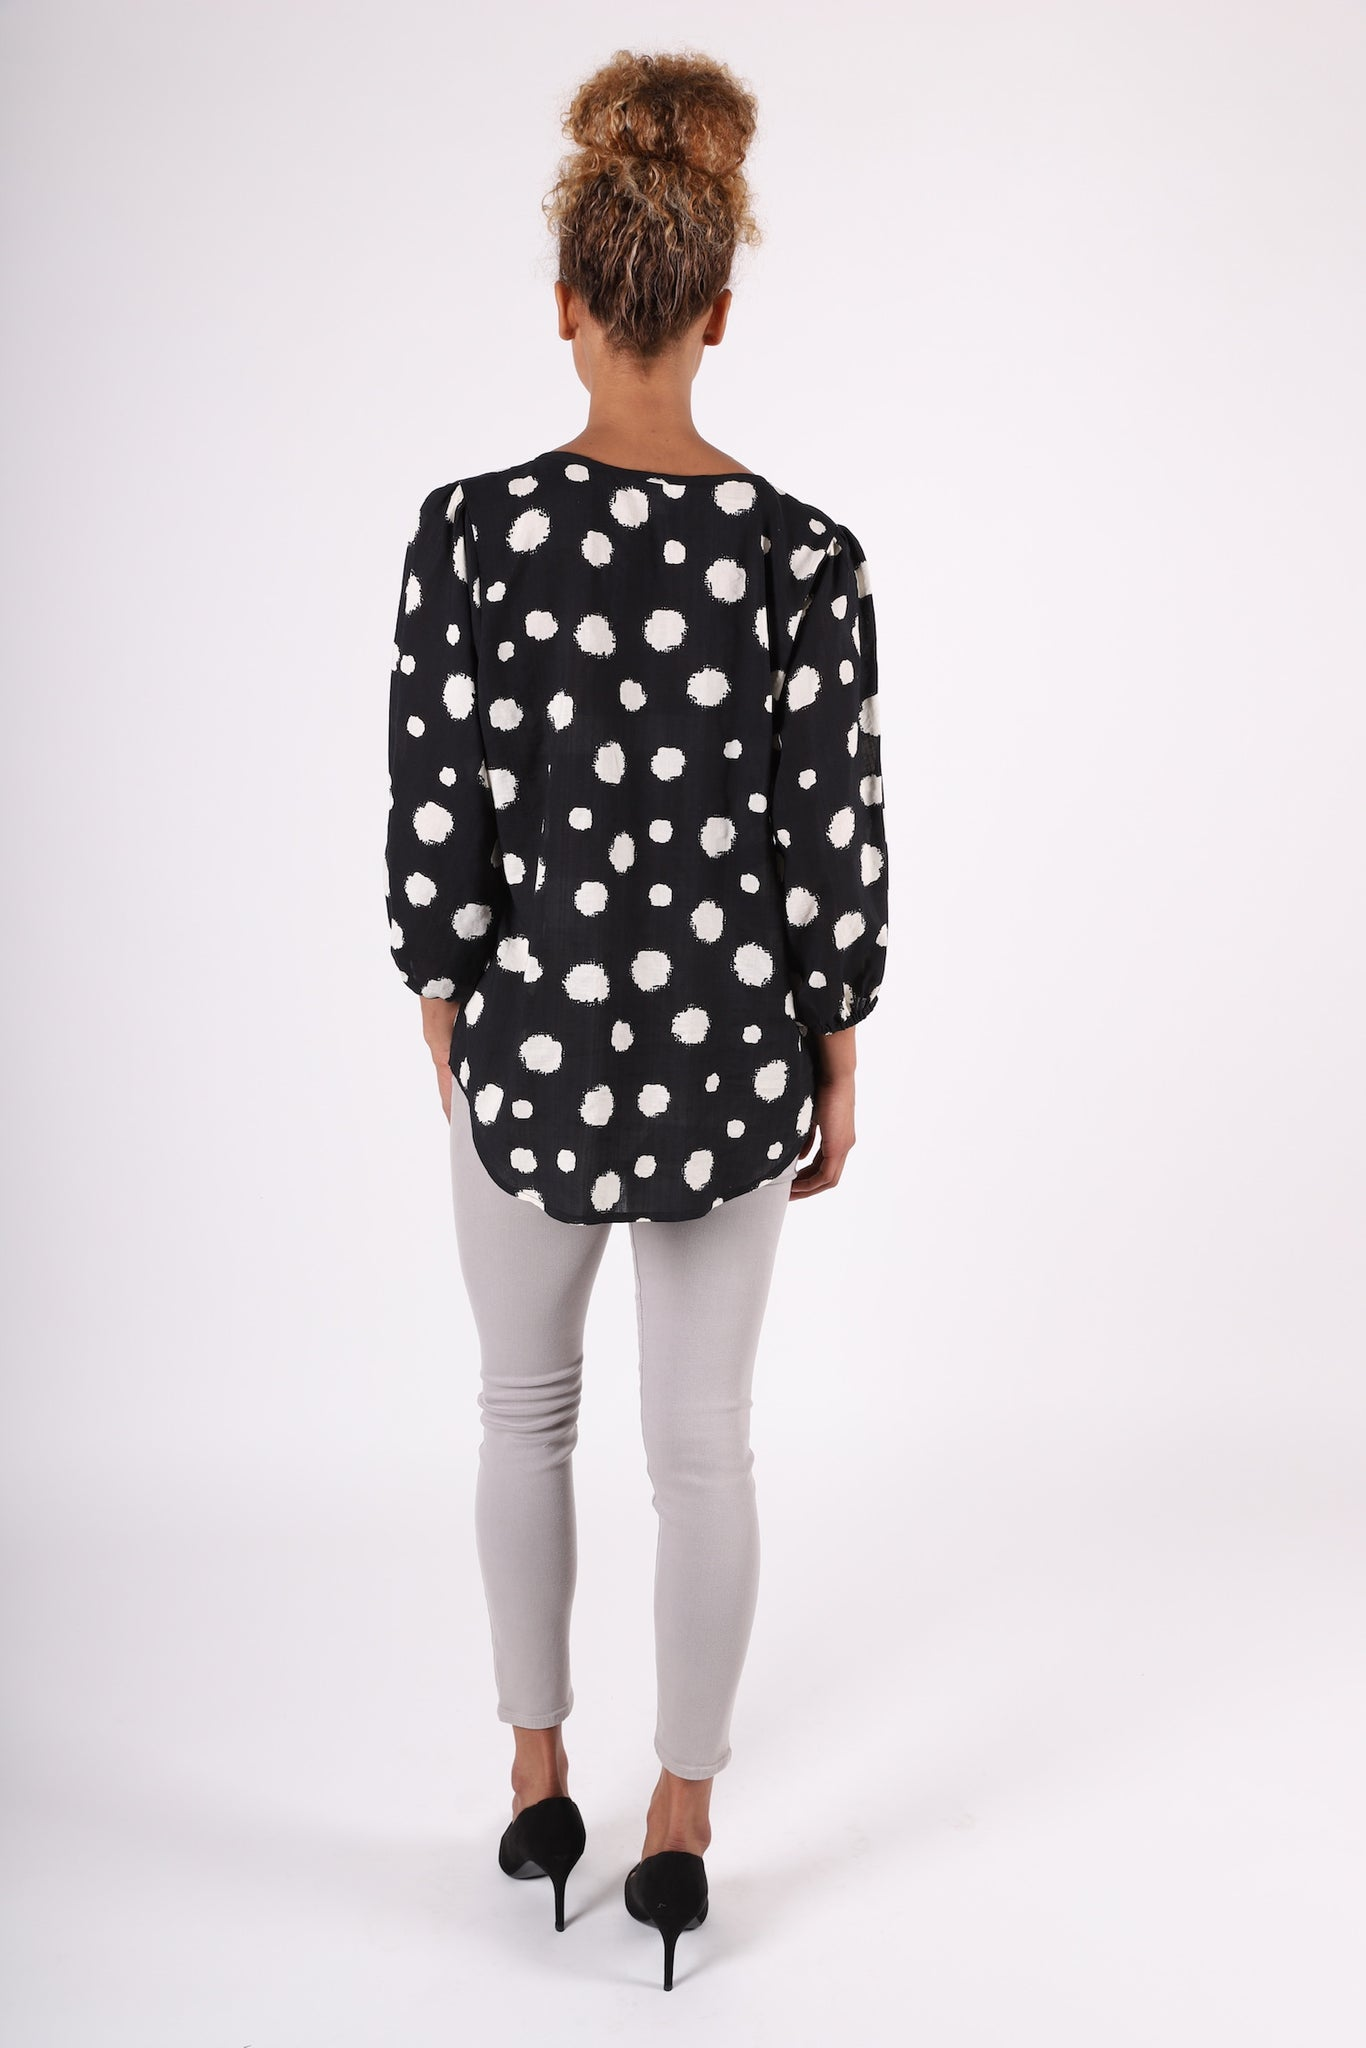 Poet Shirt | Dream Dot